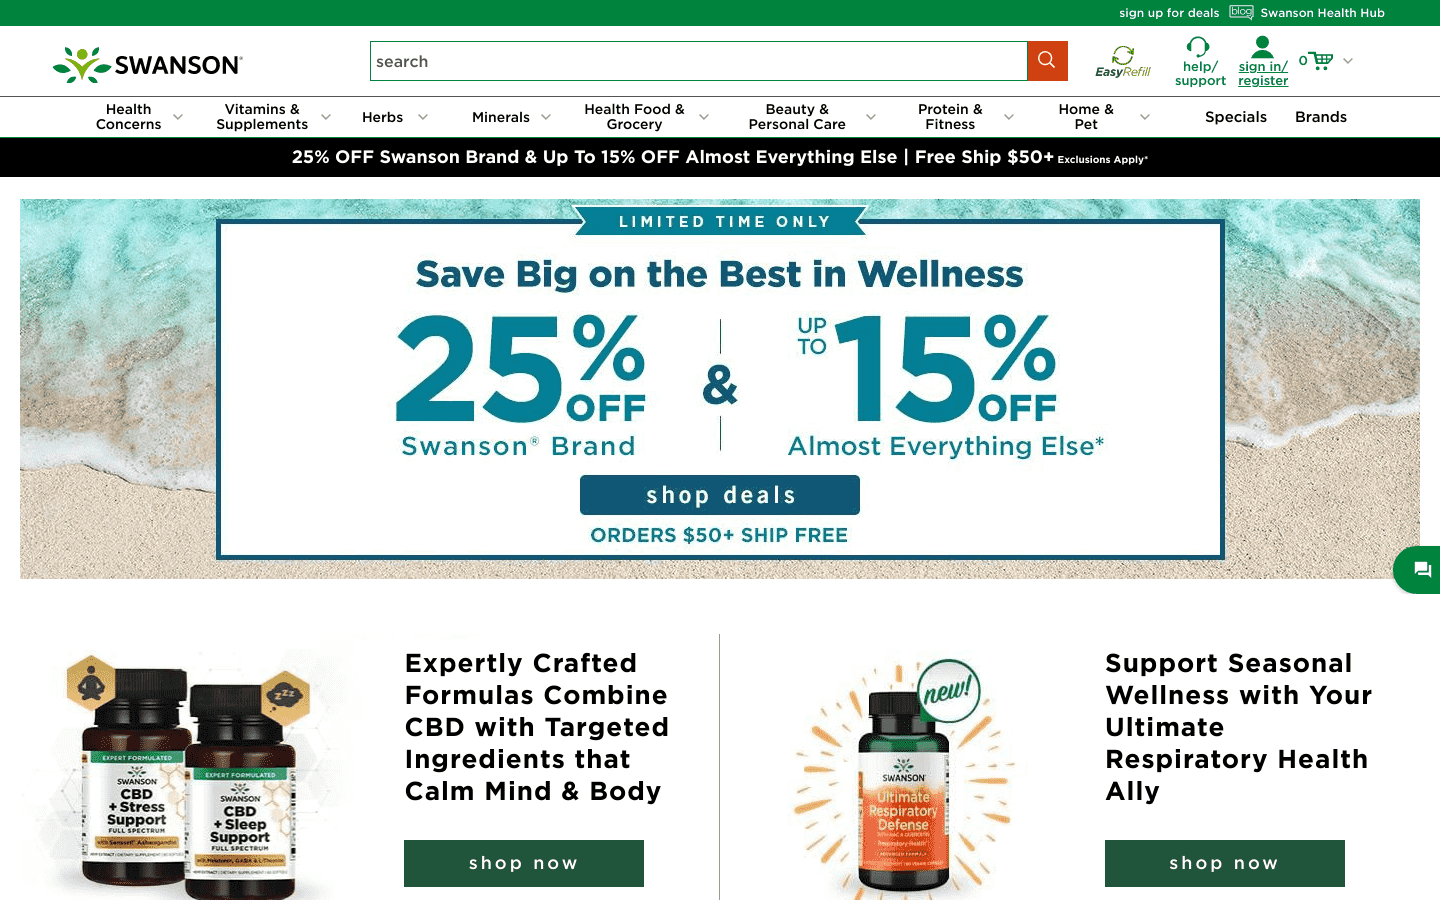 Swanson Health Products reviews and complaints